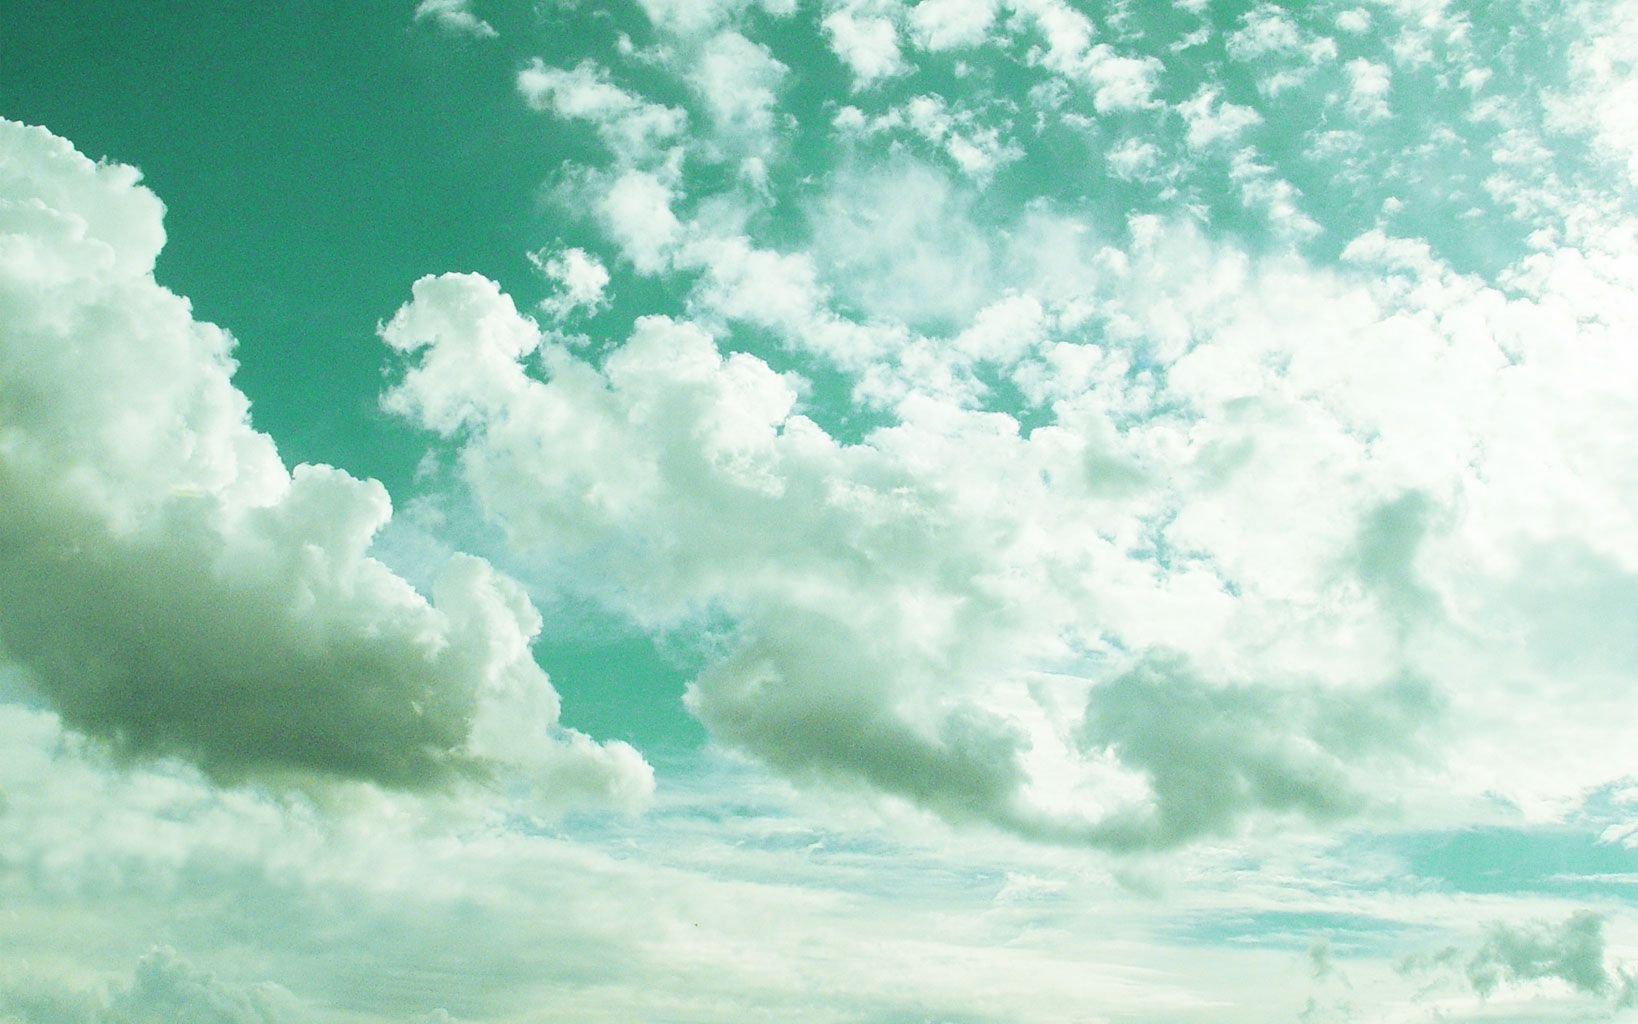 Day Dream Mint Aesthetic Pastel Green Aesthetic Aesthetic Angel Aesthetic mint green clouds wallpaper